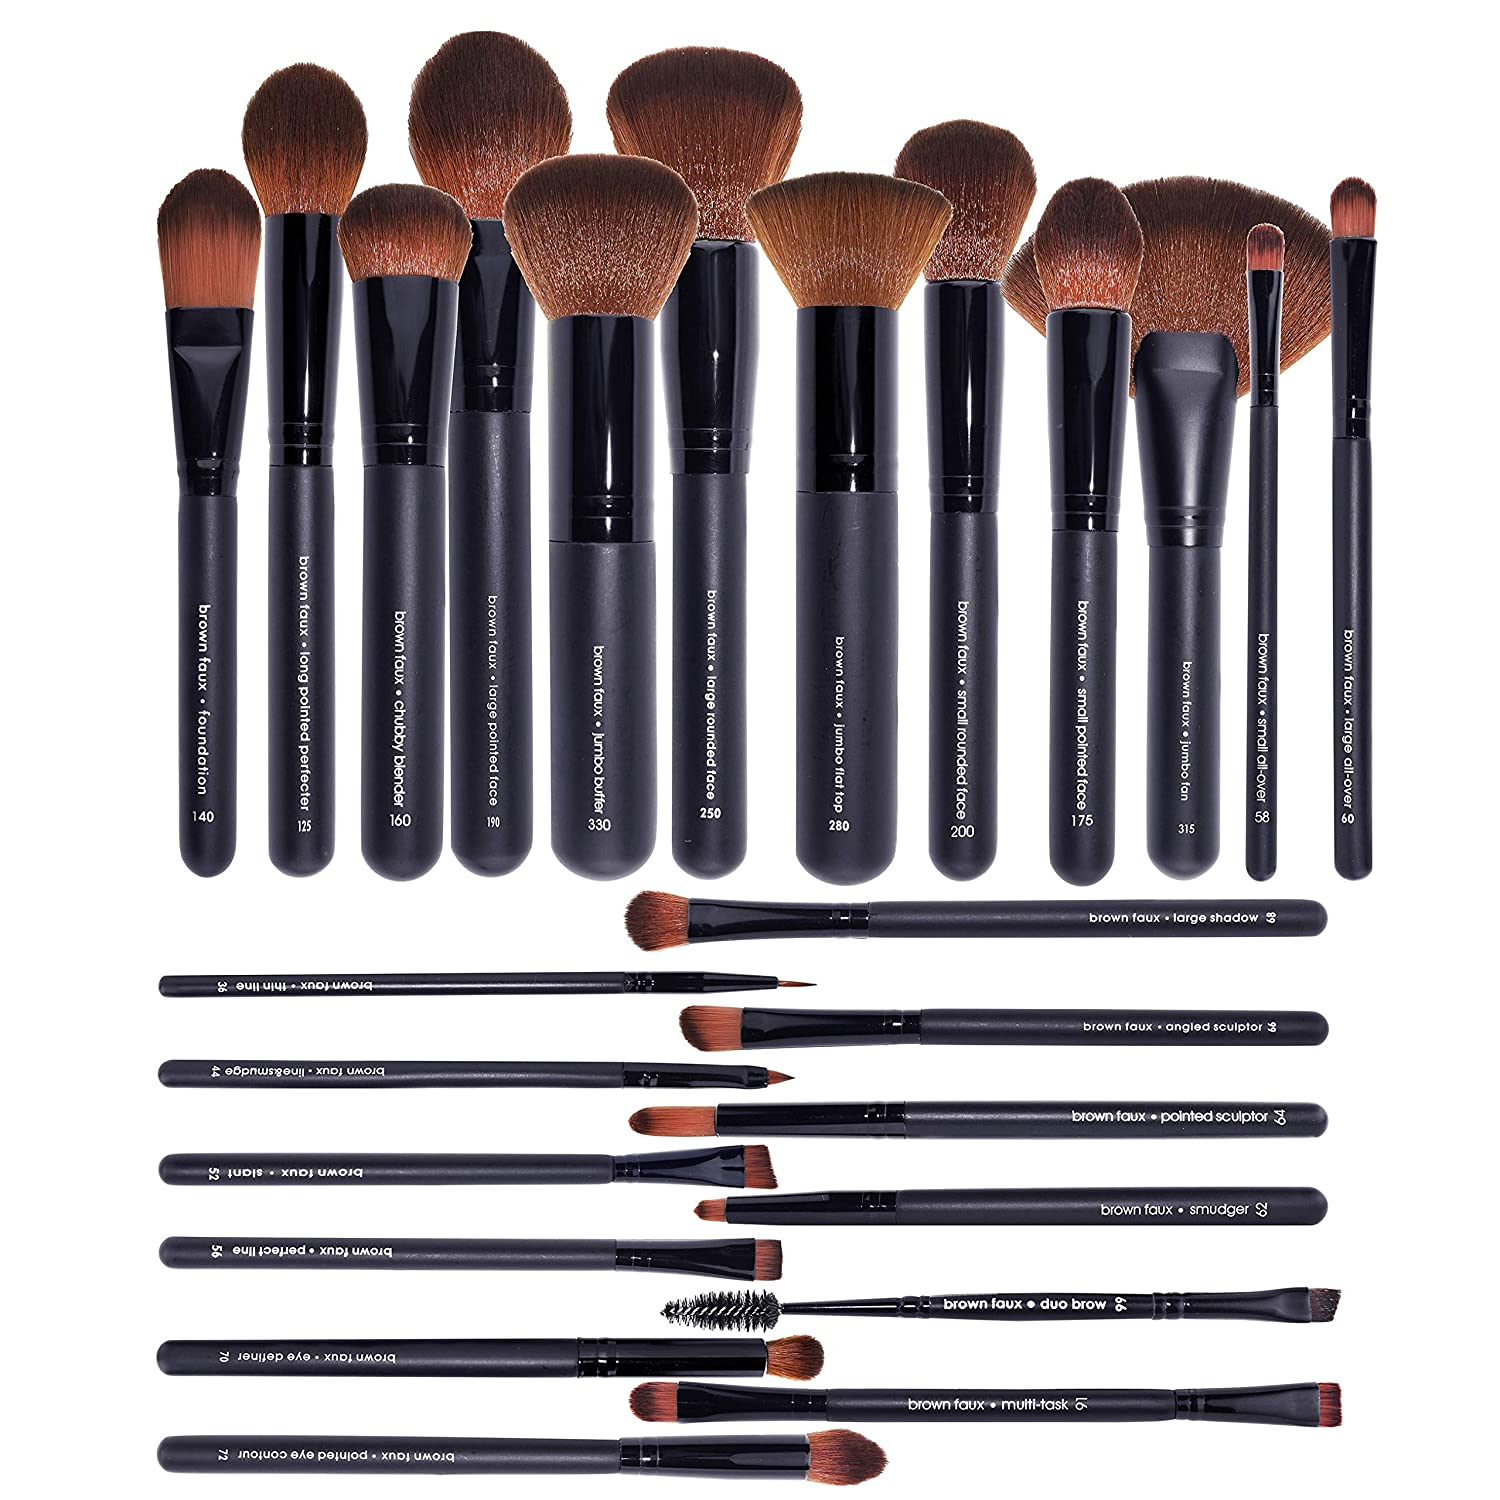 BaeBlu UltraPlush Premium Professional Faux Makeup Brushes, Vegan & Cruelty Free, Made in USA, Small Rounded Face